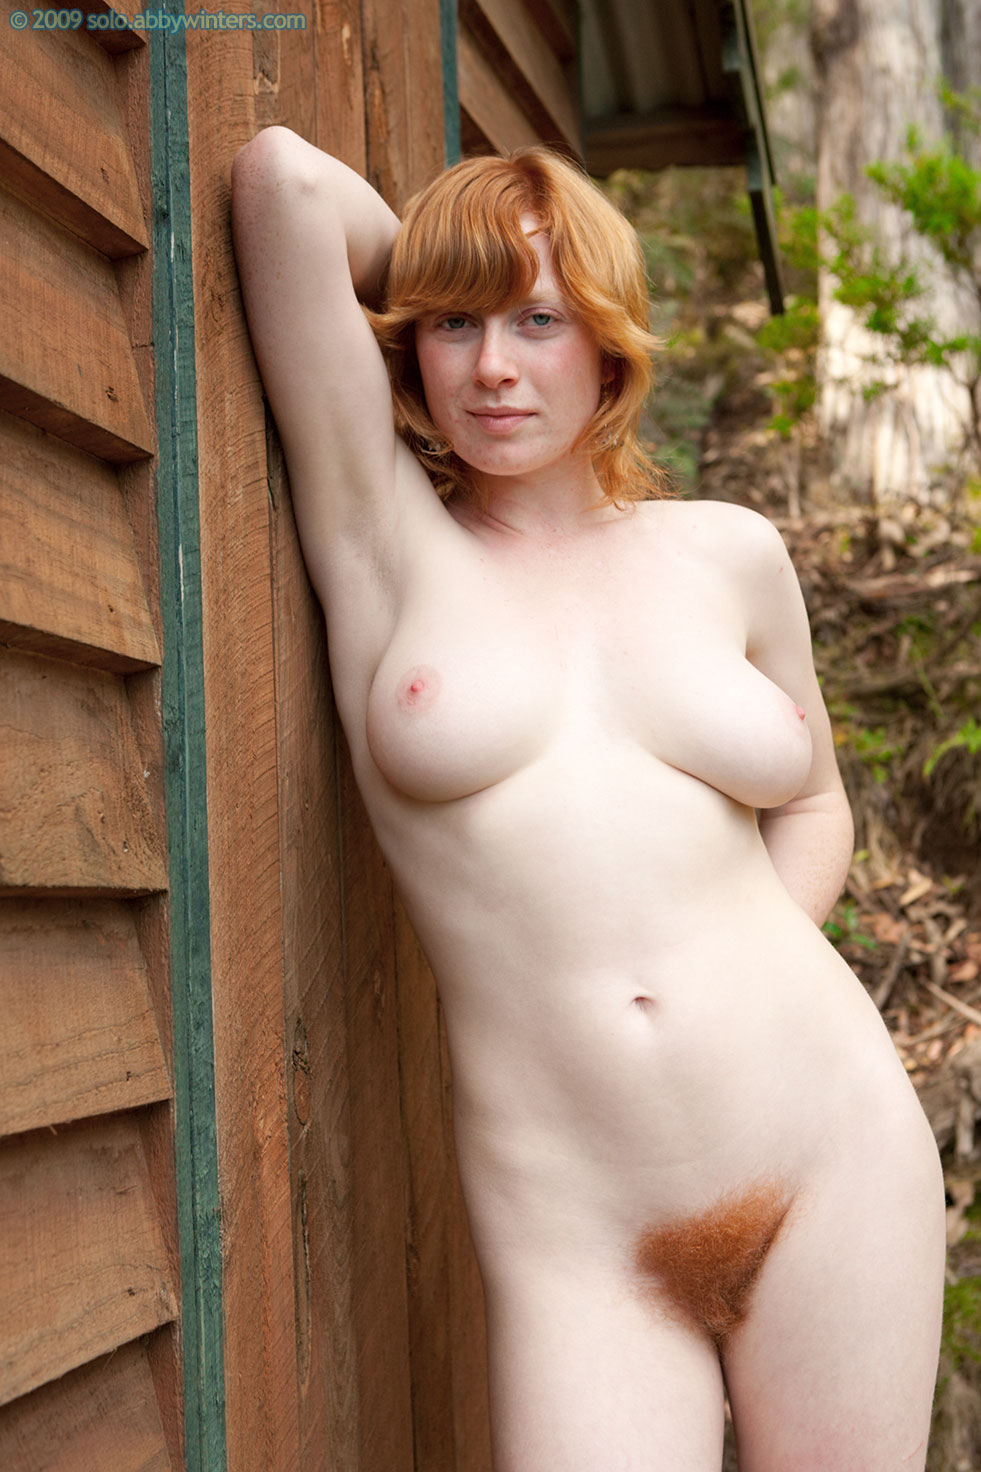 nude chubby woman bush